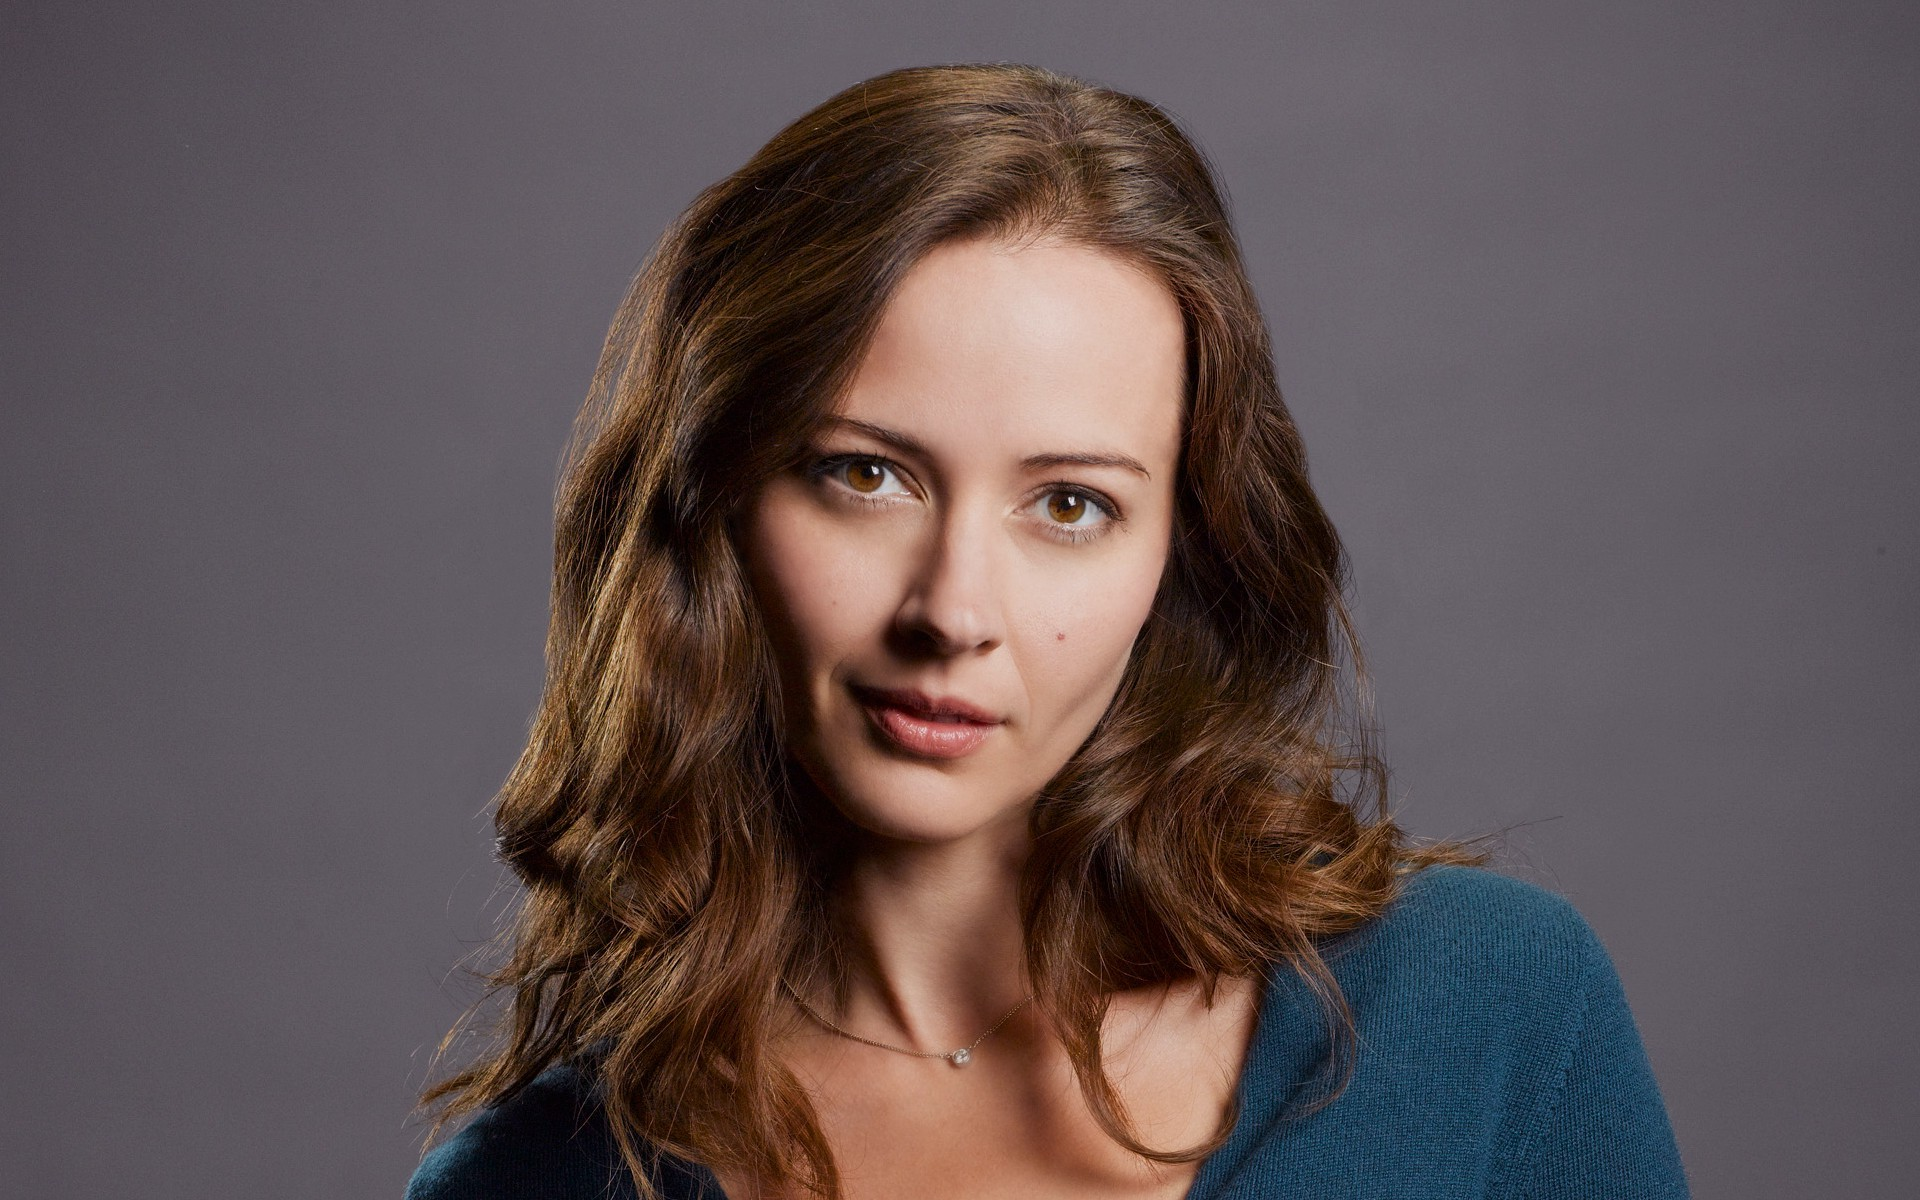 Cute Amy Acker Wallpaper